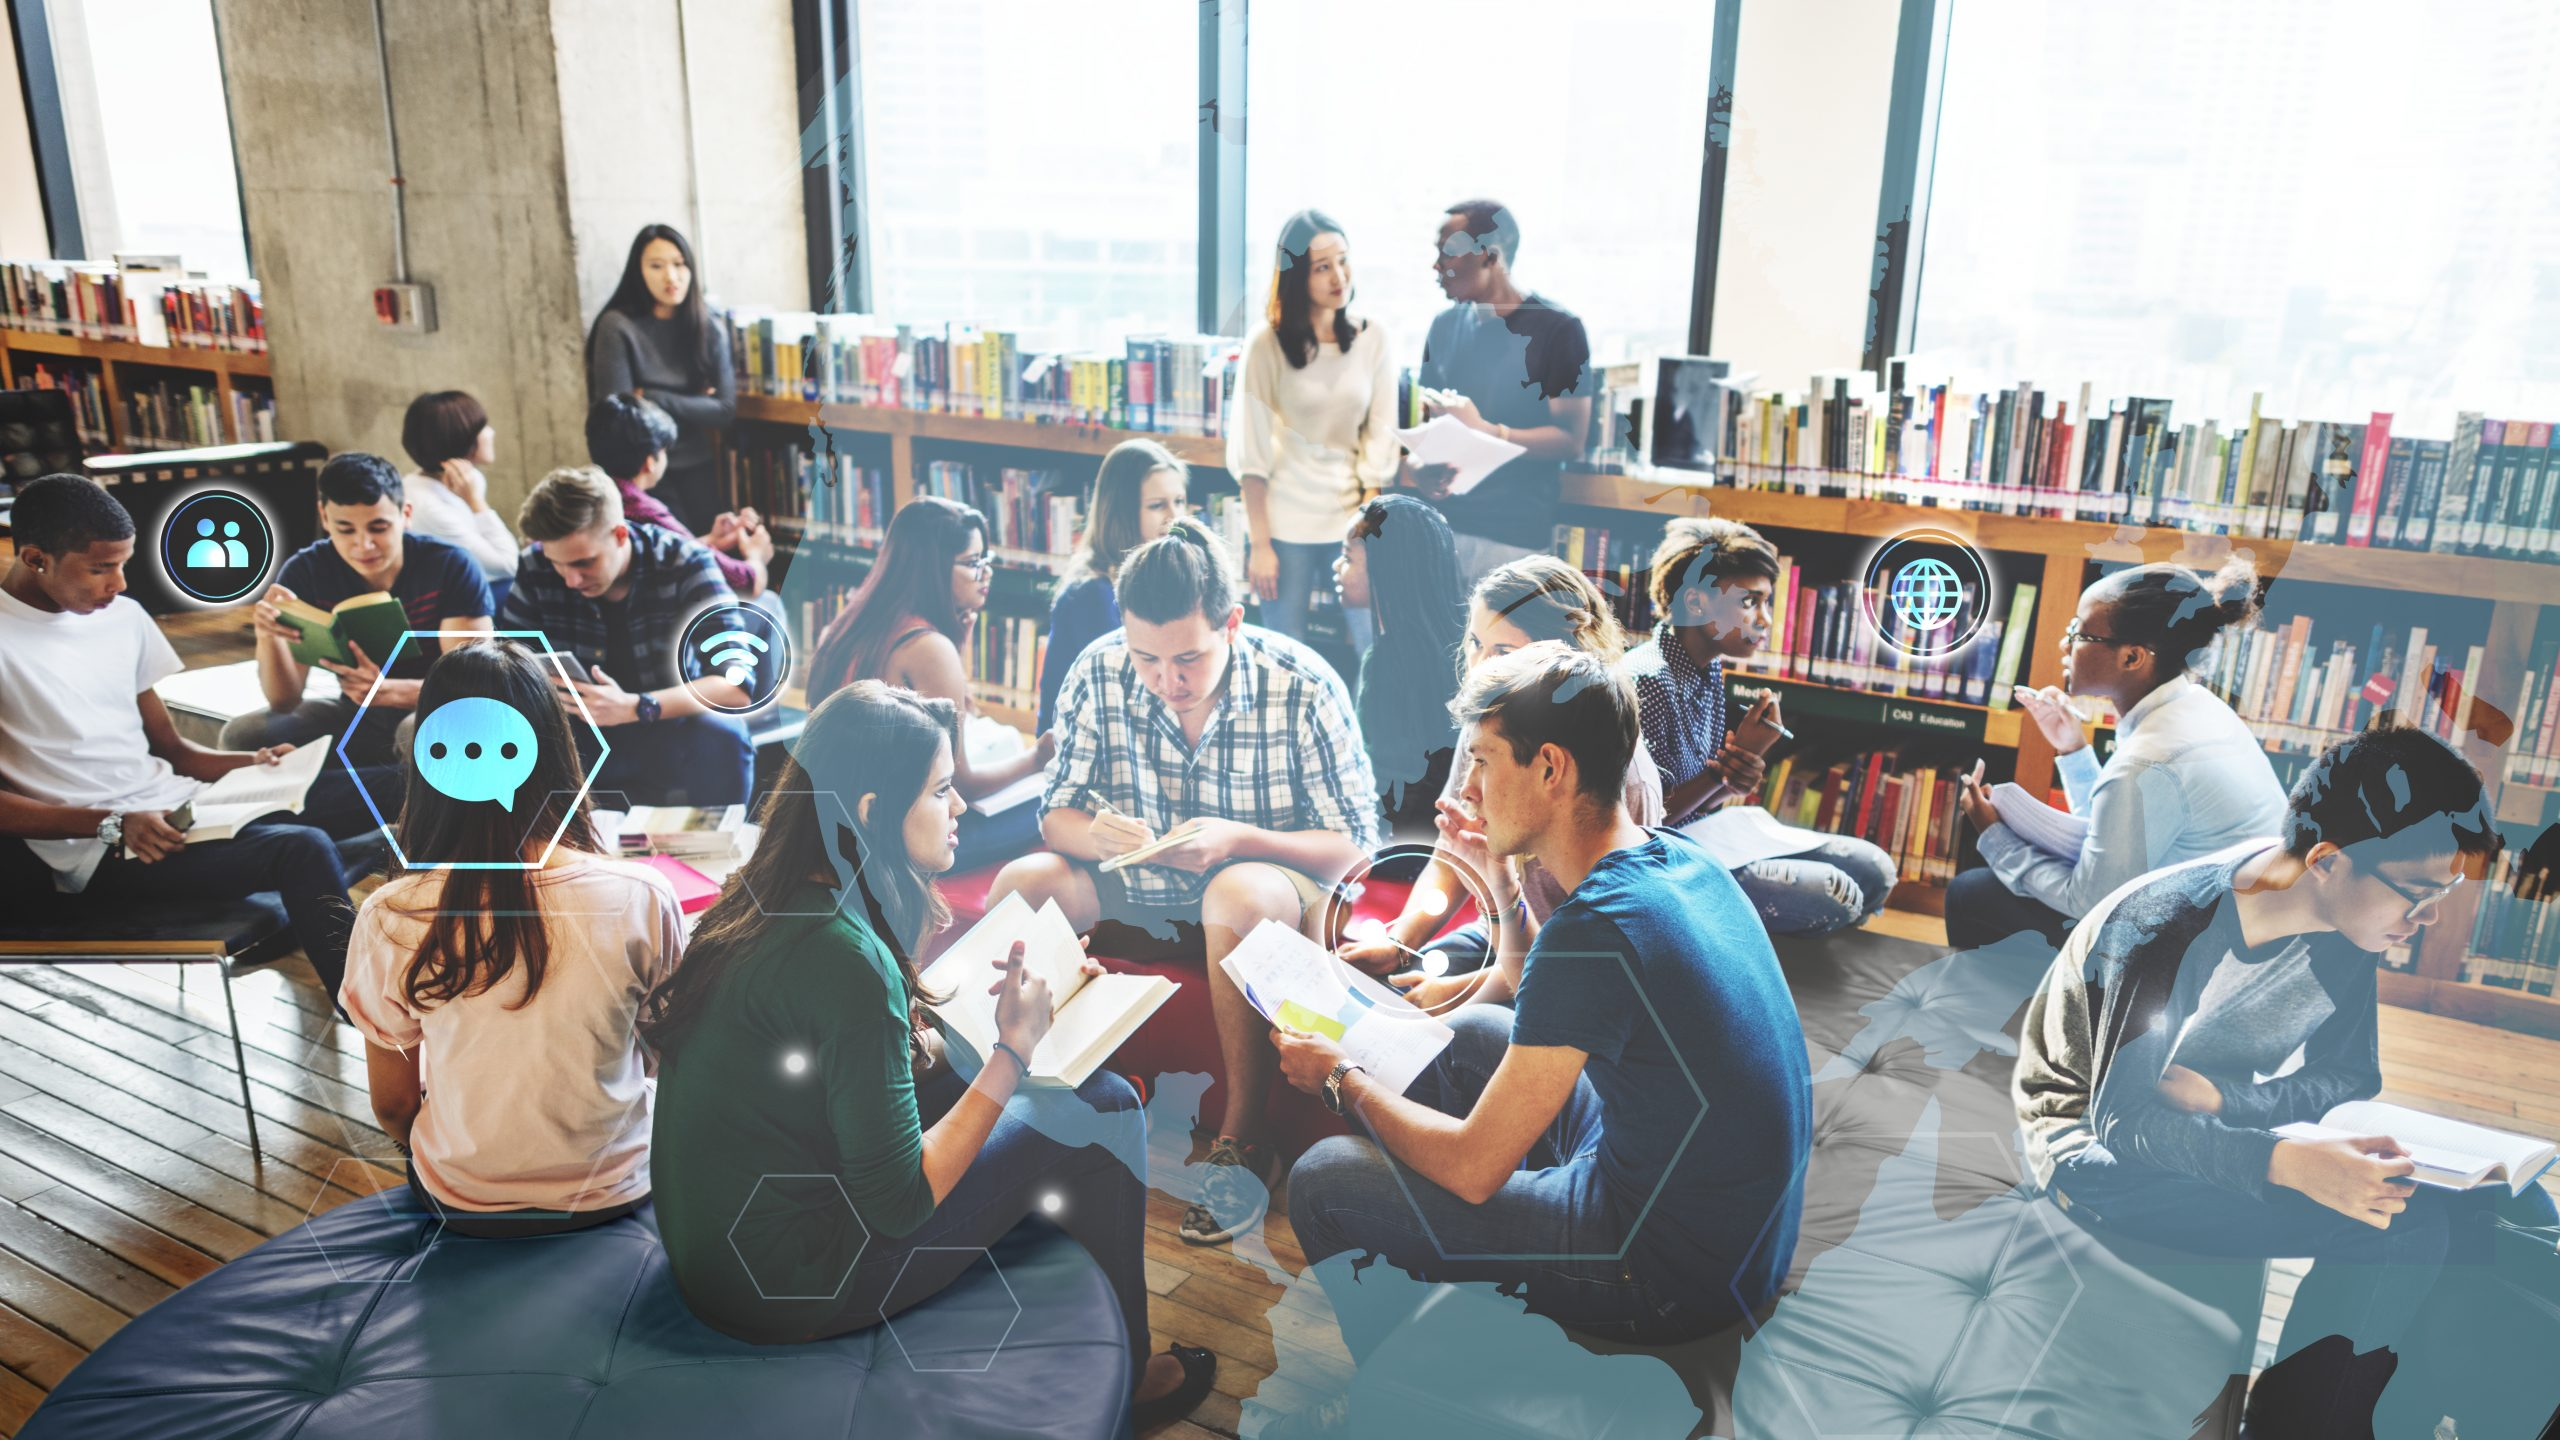 Group of diverse students working in a school library